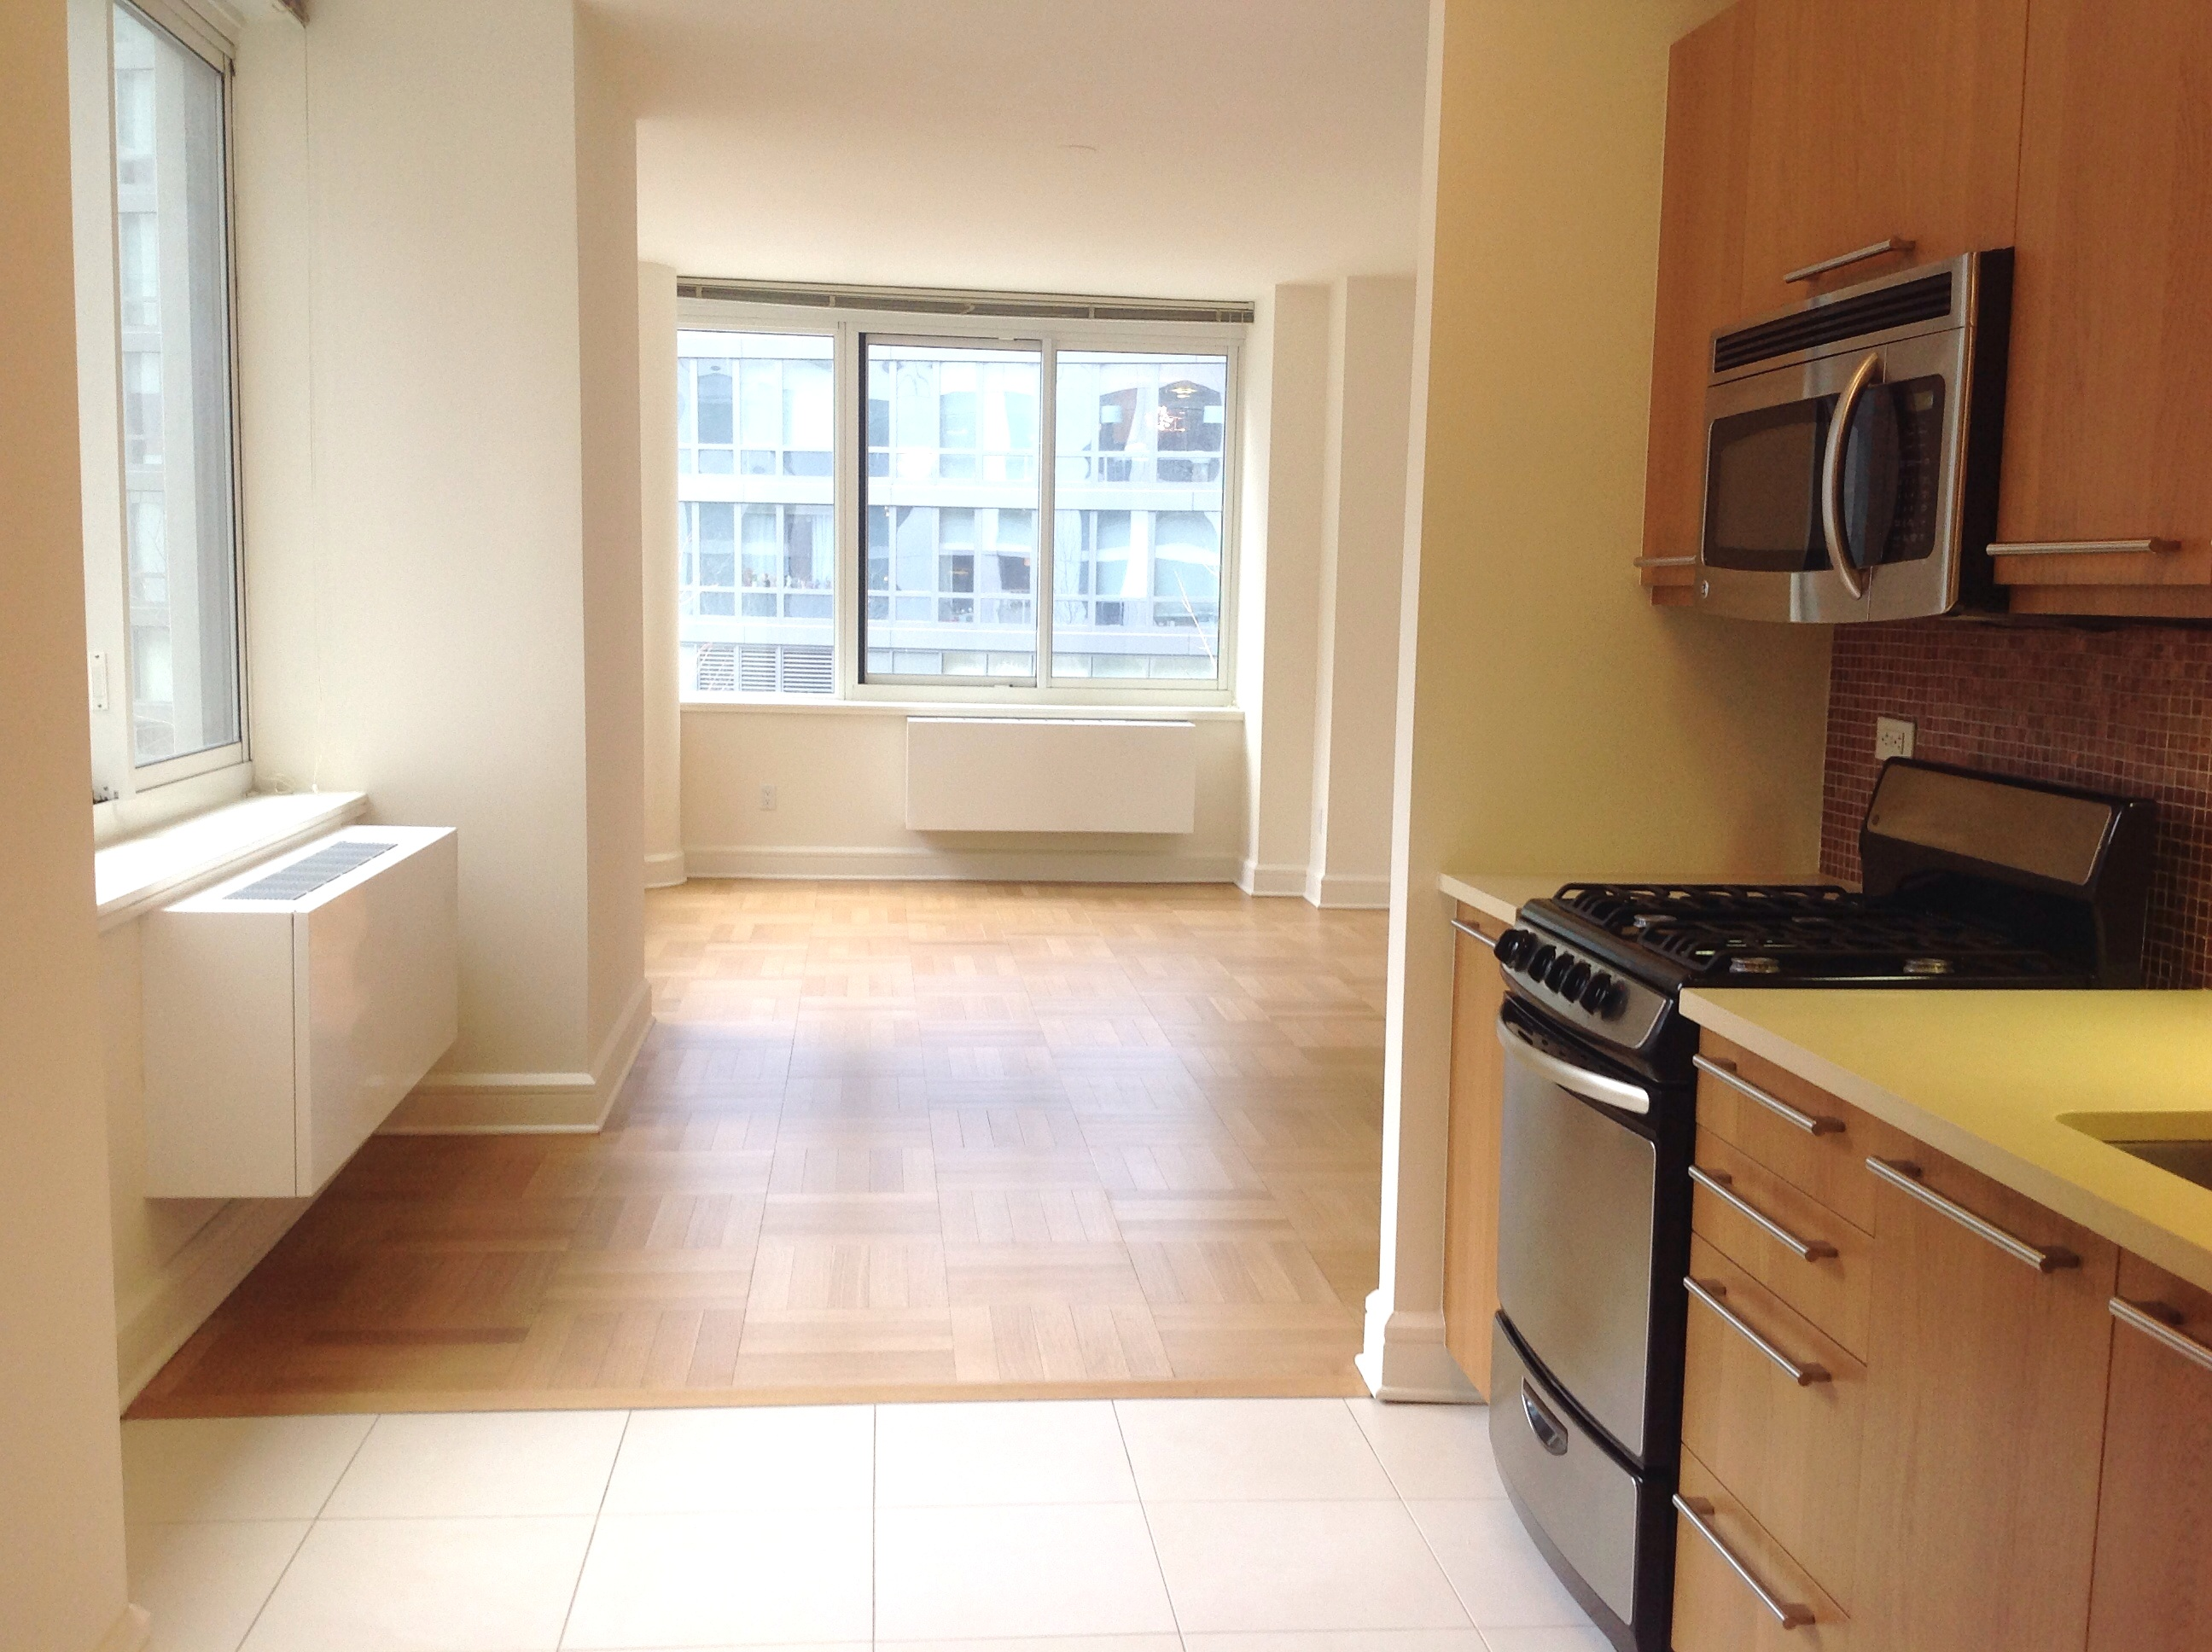 400 West 63rd St, 309 - Upper West Side, New York